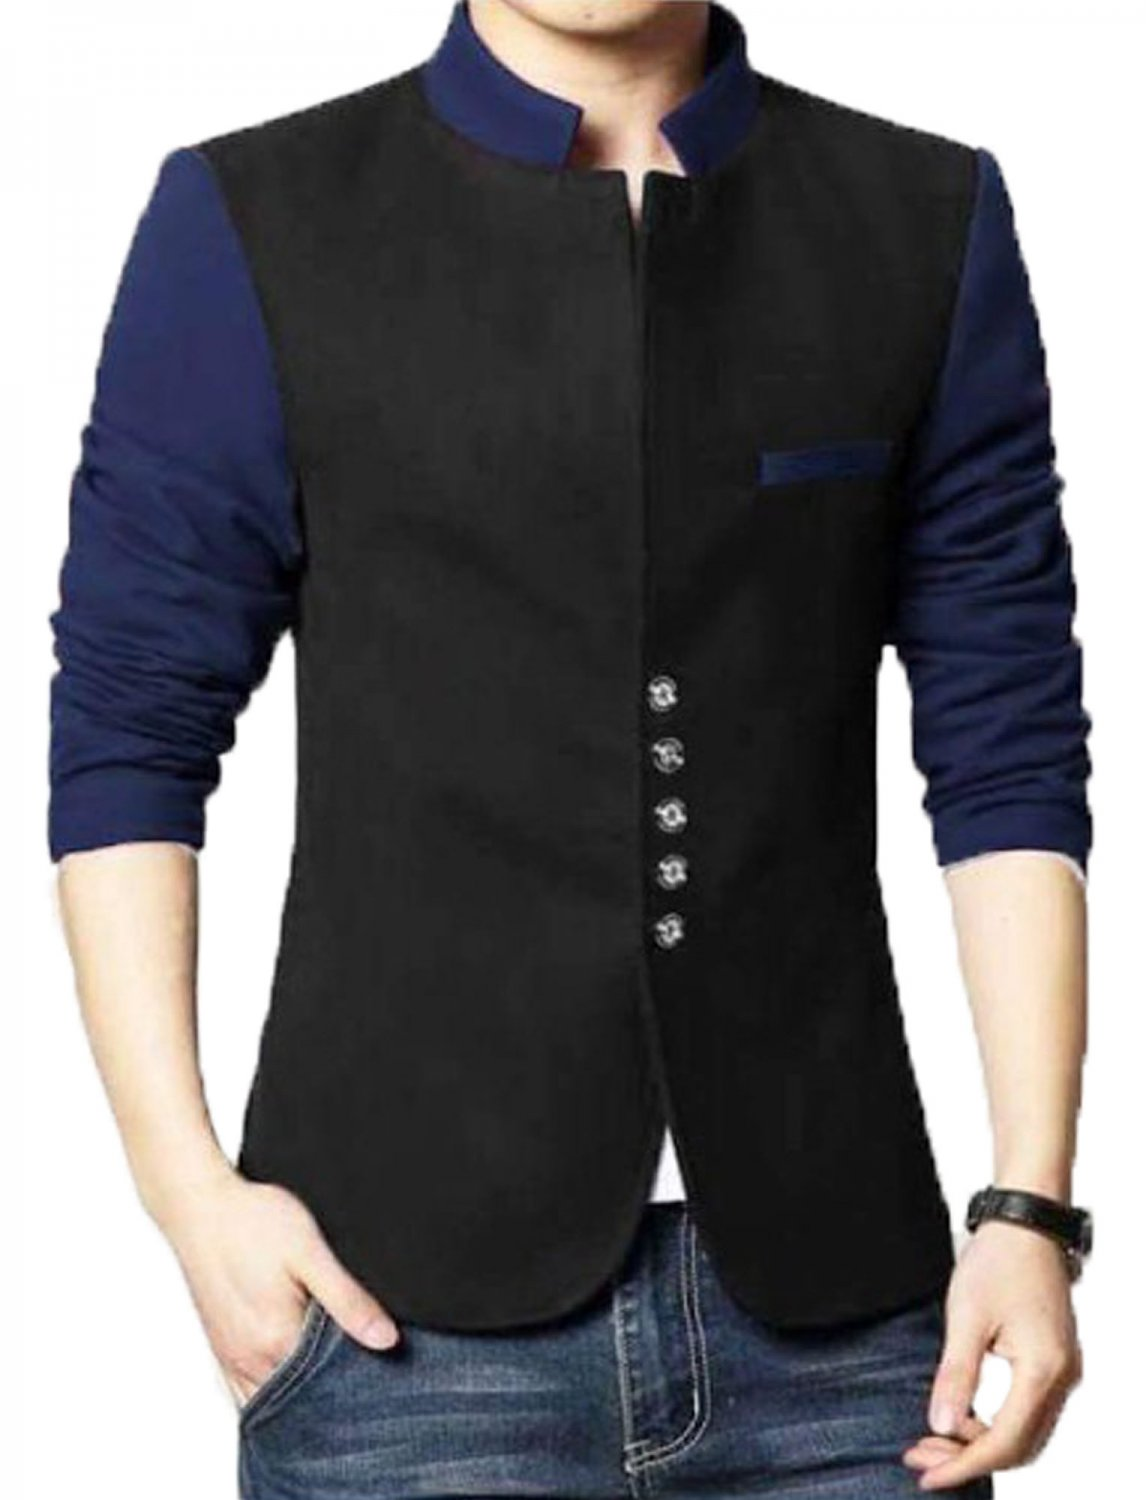 Men Slim Fit Casual Party Wear Fleece Black Waist Coat Vest